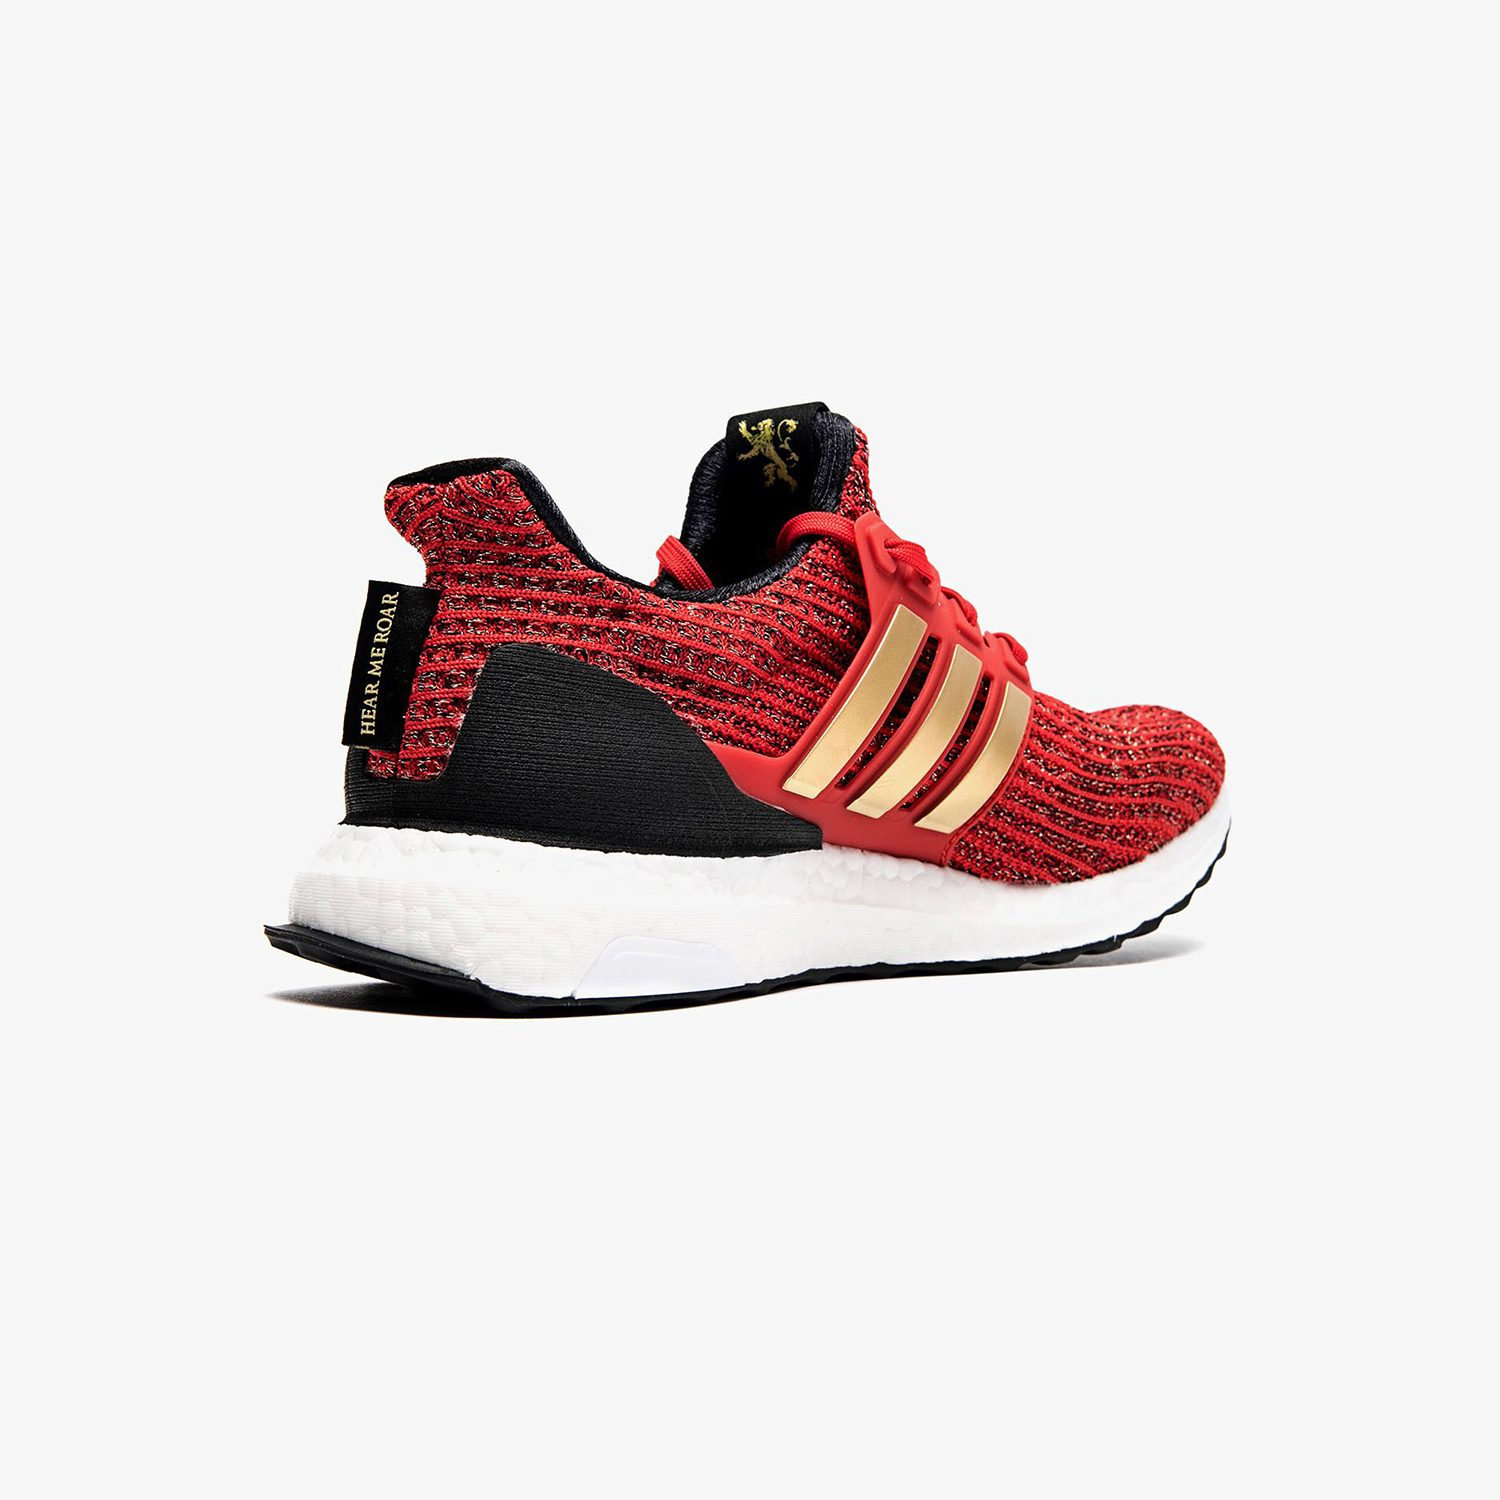 711a4734a1898 adidas Ultraboost x Game of Thrones